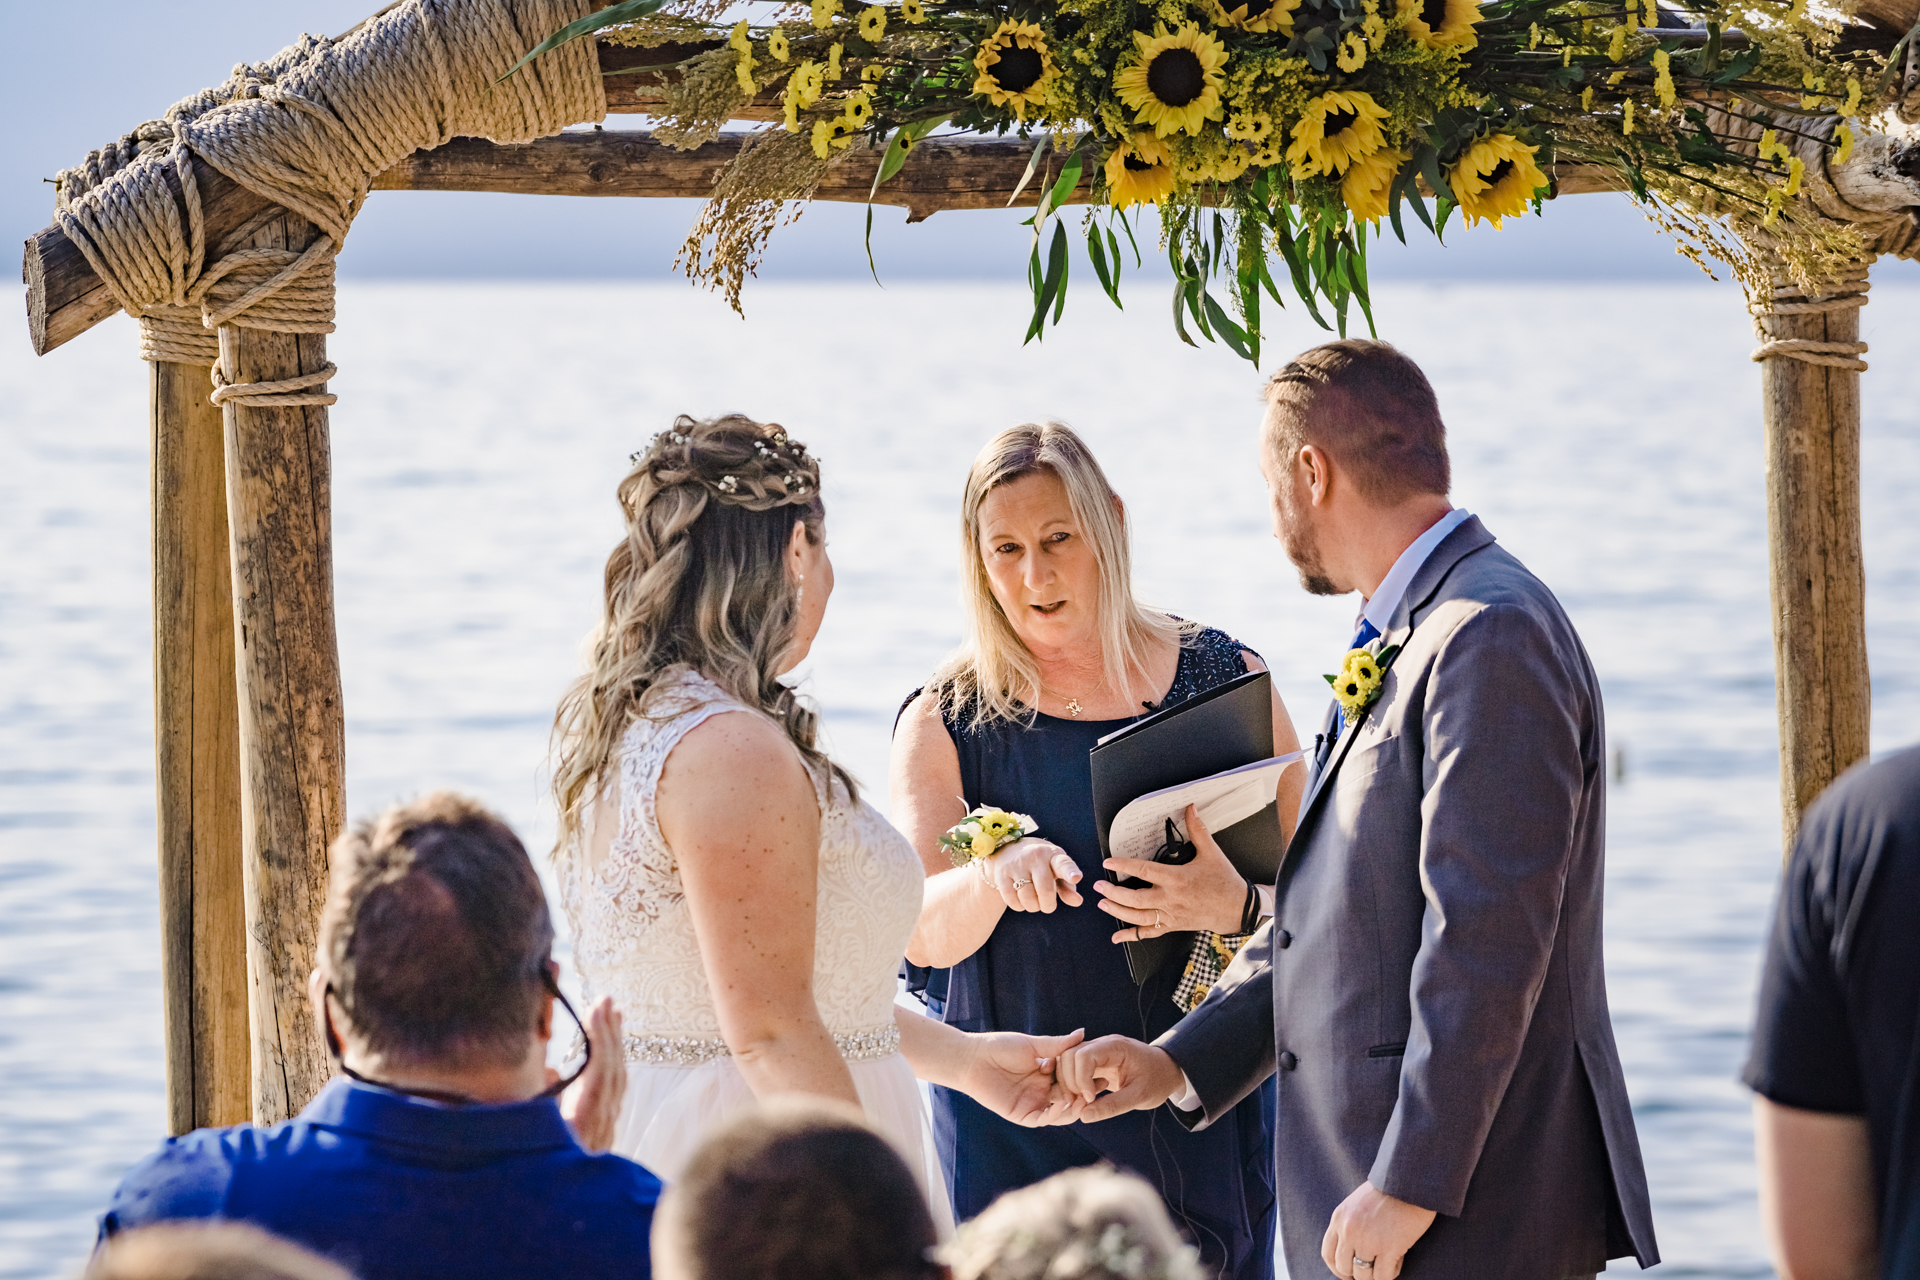 Lakeside Beach - Tahoe Wedding Photographer | The bride and groom are officially married